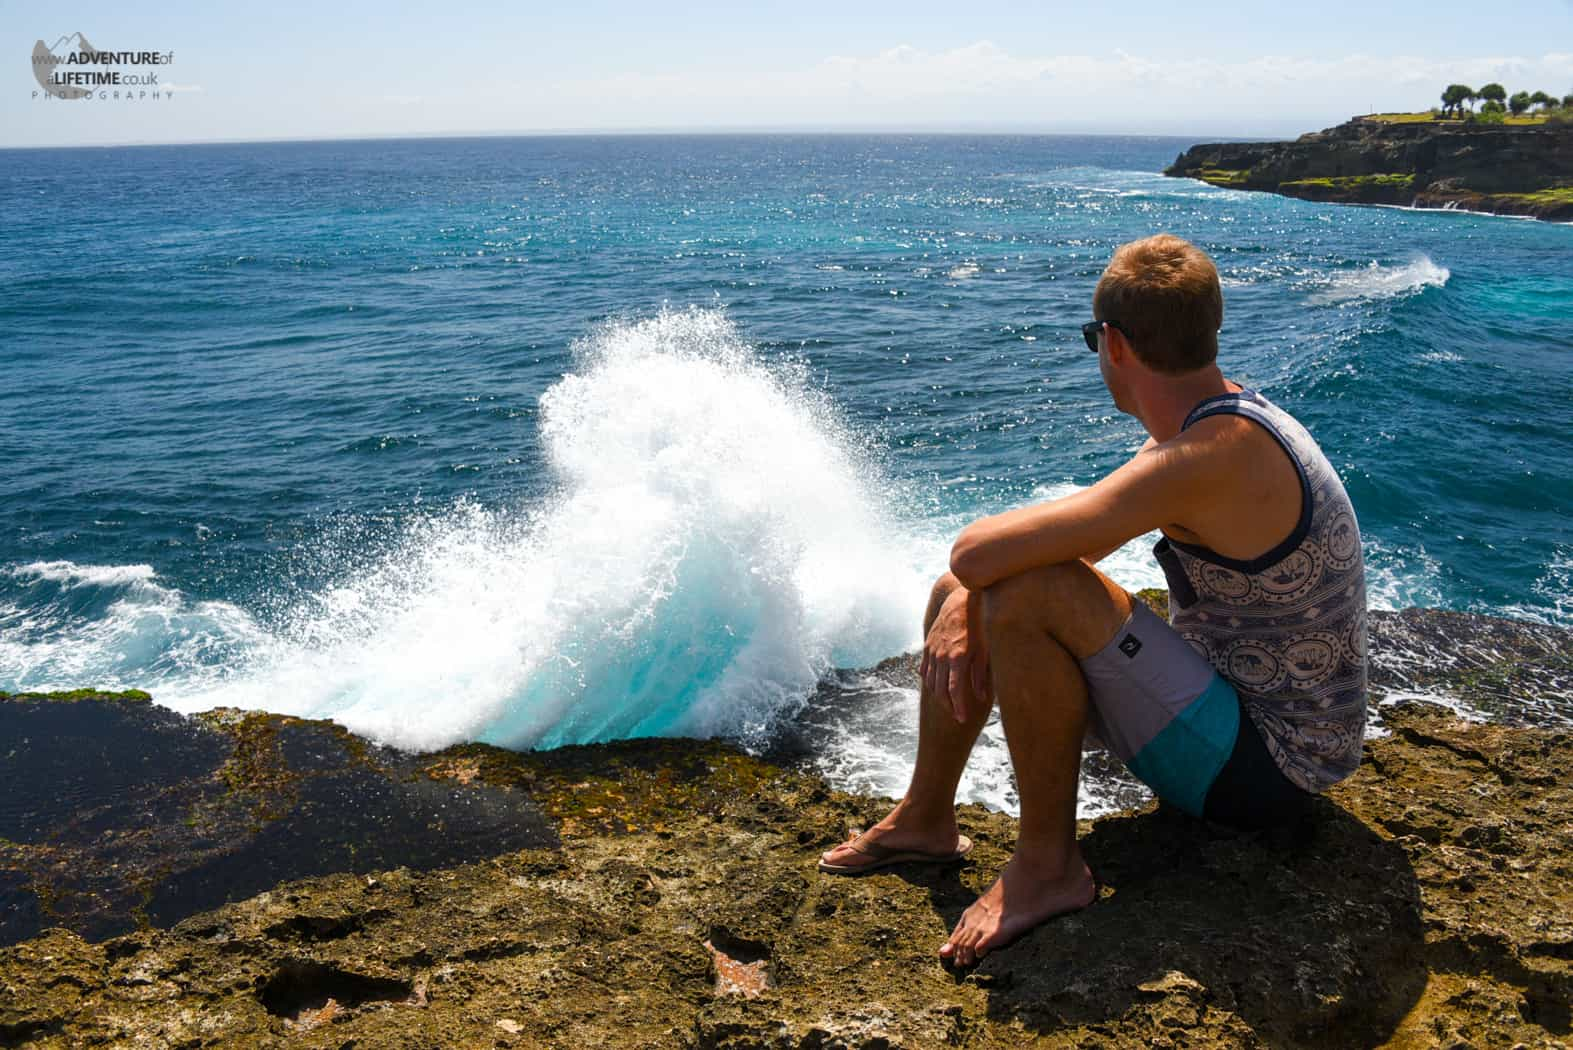 Michael watching the waves at Nusa Lembongan